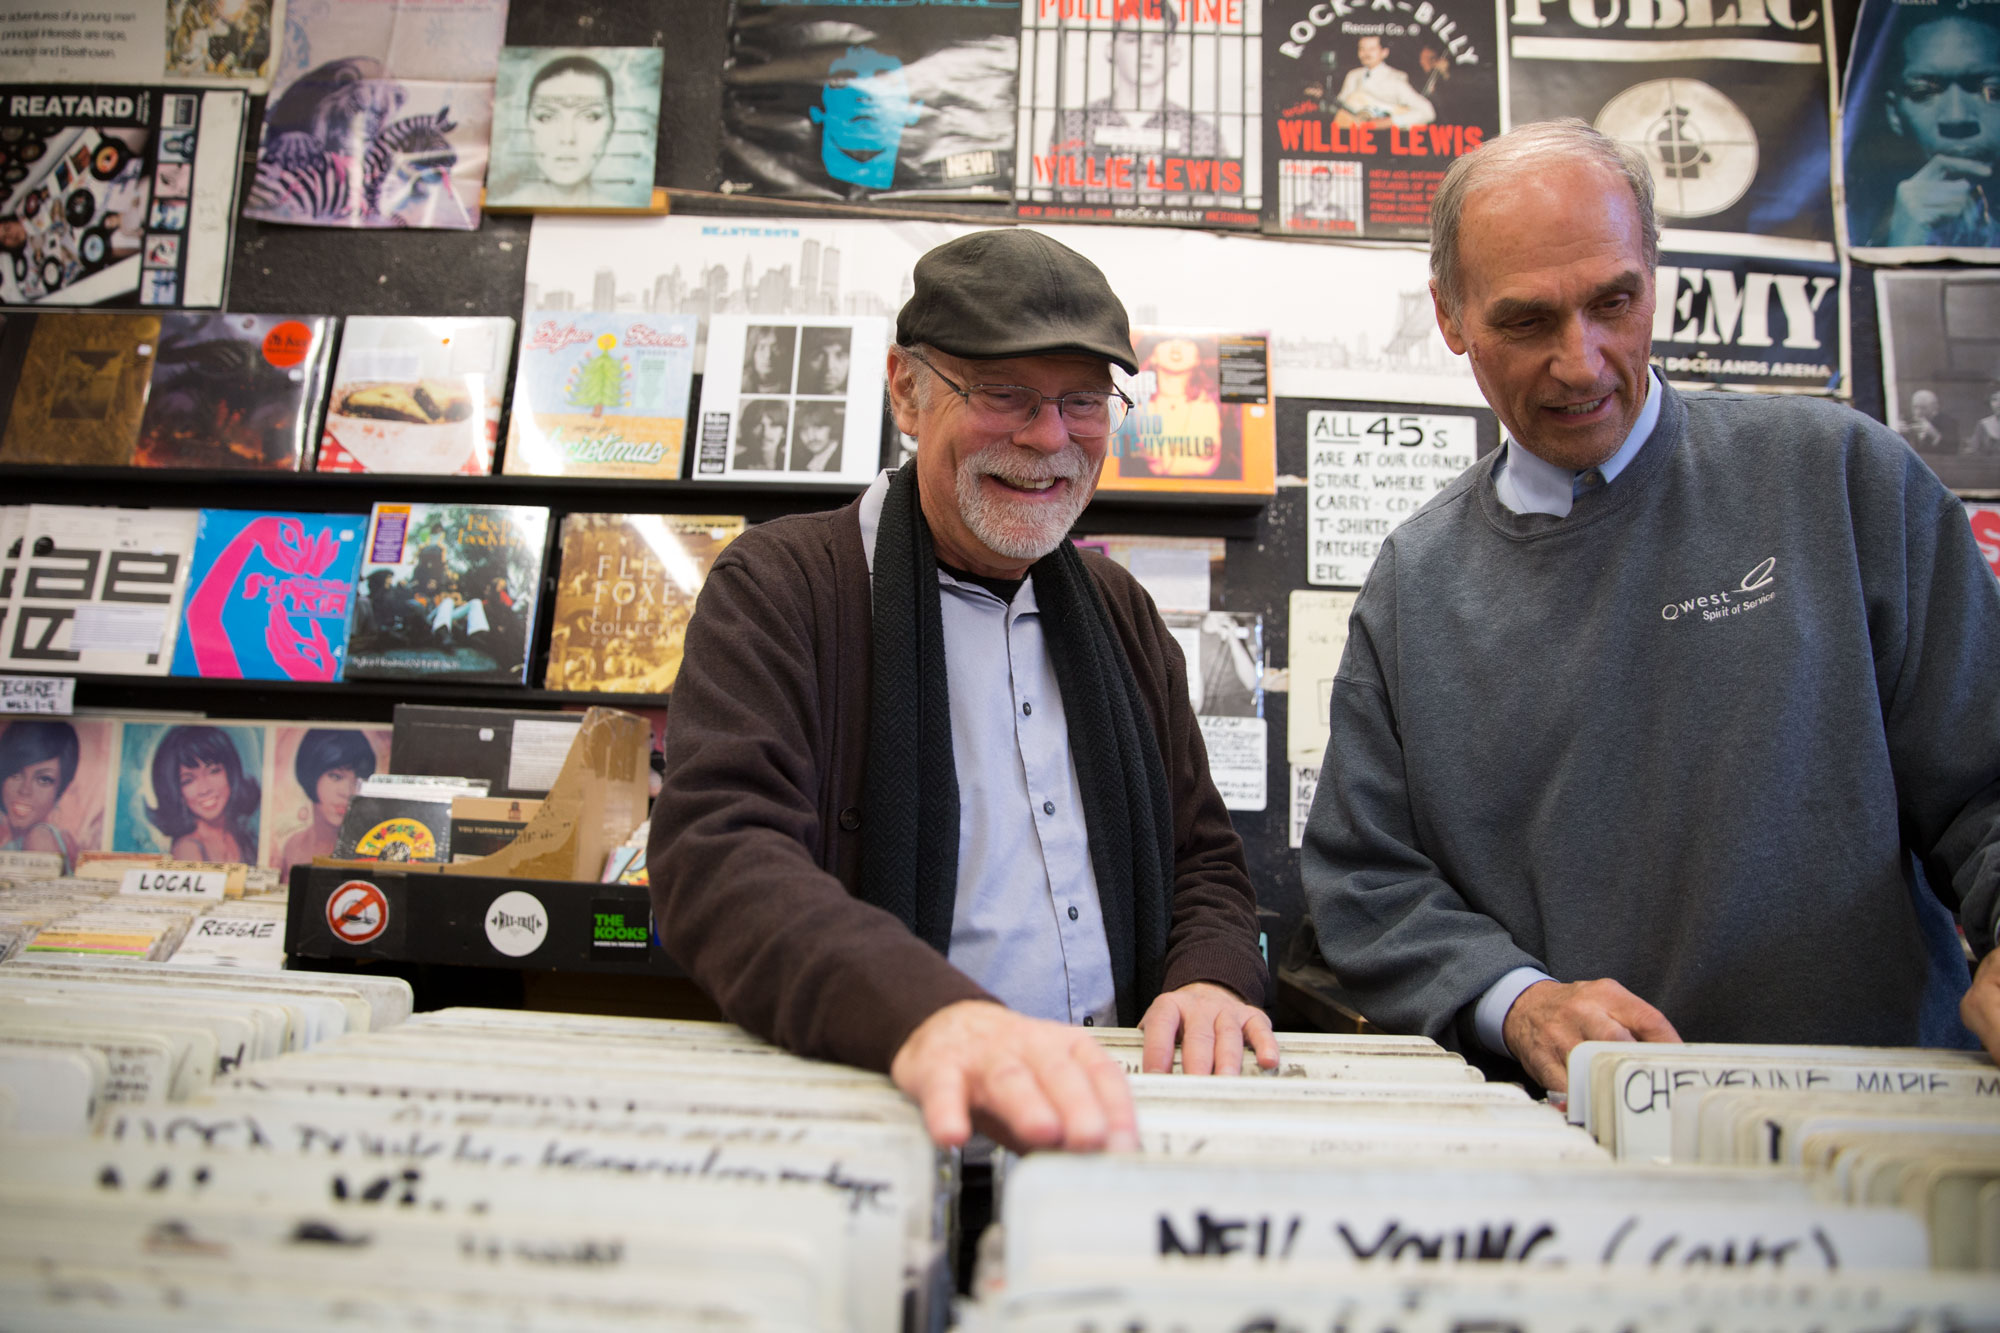 <p>Duane Davis (left) and Dave Stidman rifle through records at Wax Trax, the Capitol Hill record store mecca they've co-owned for 40 years, on Nov. 13, 2018.</p>